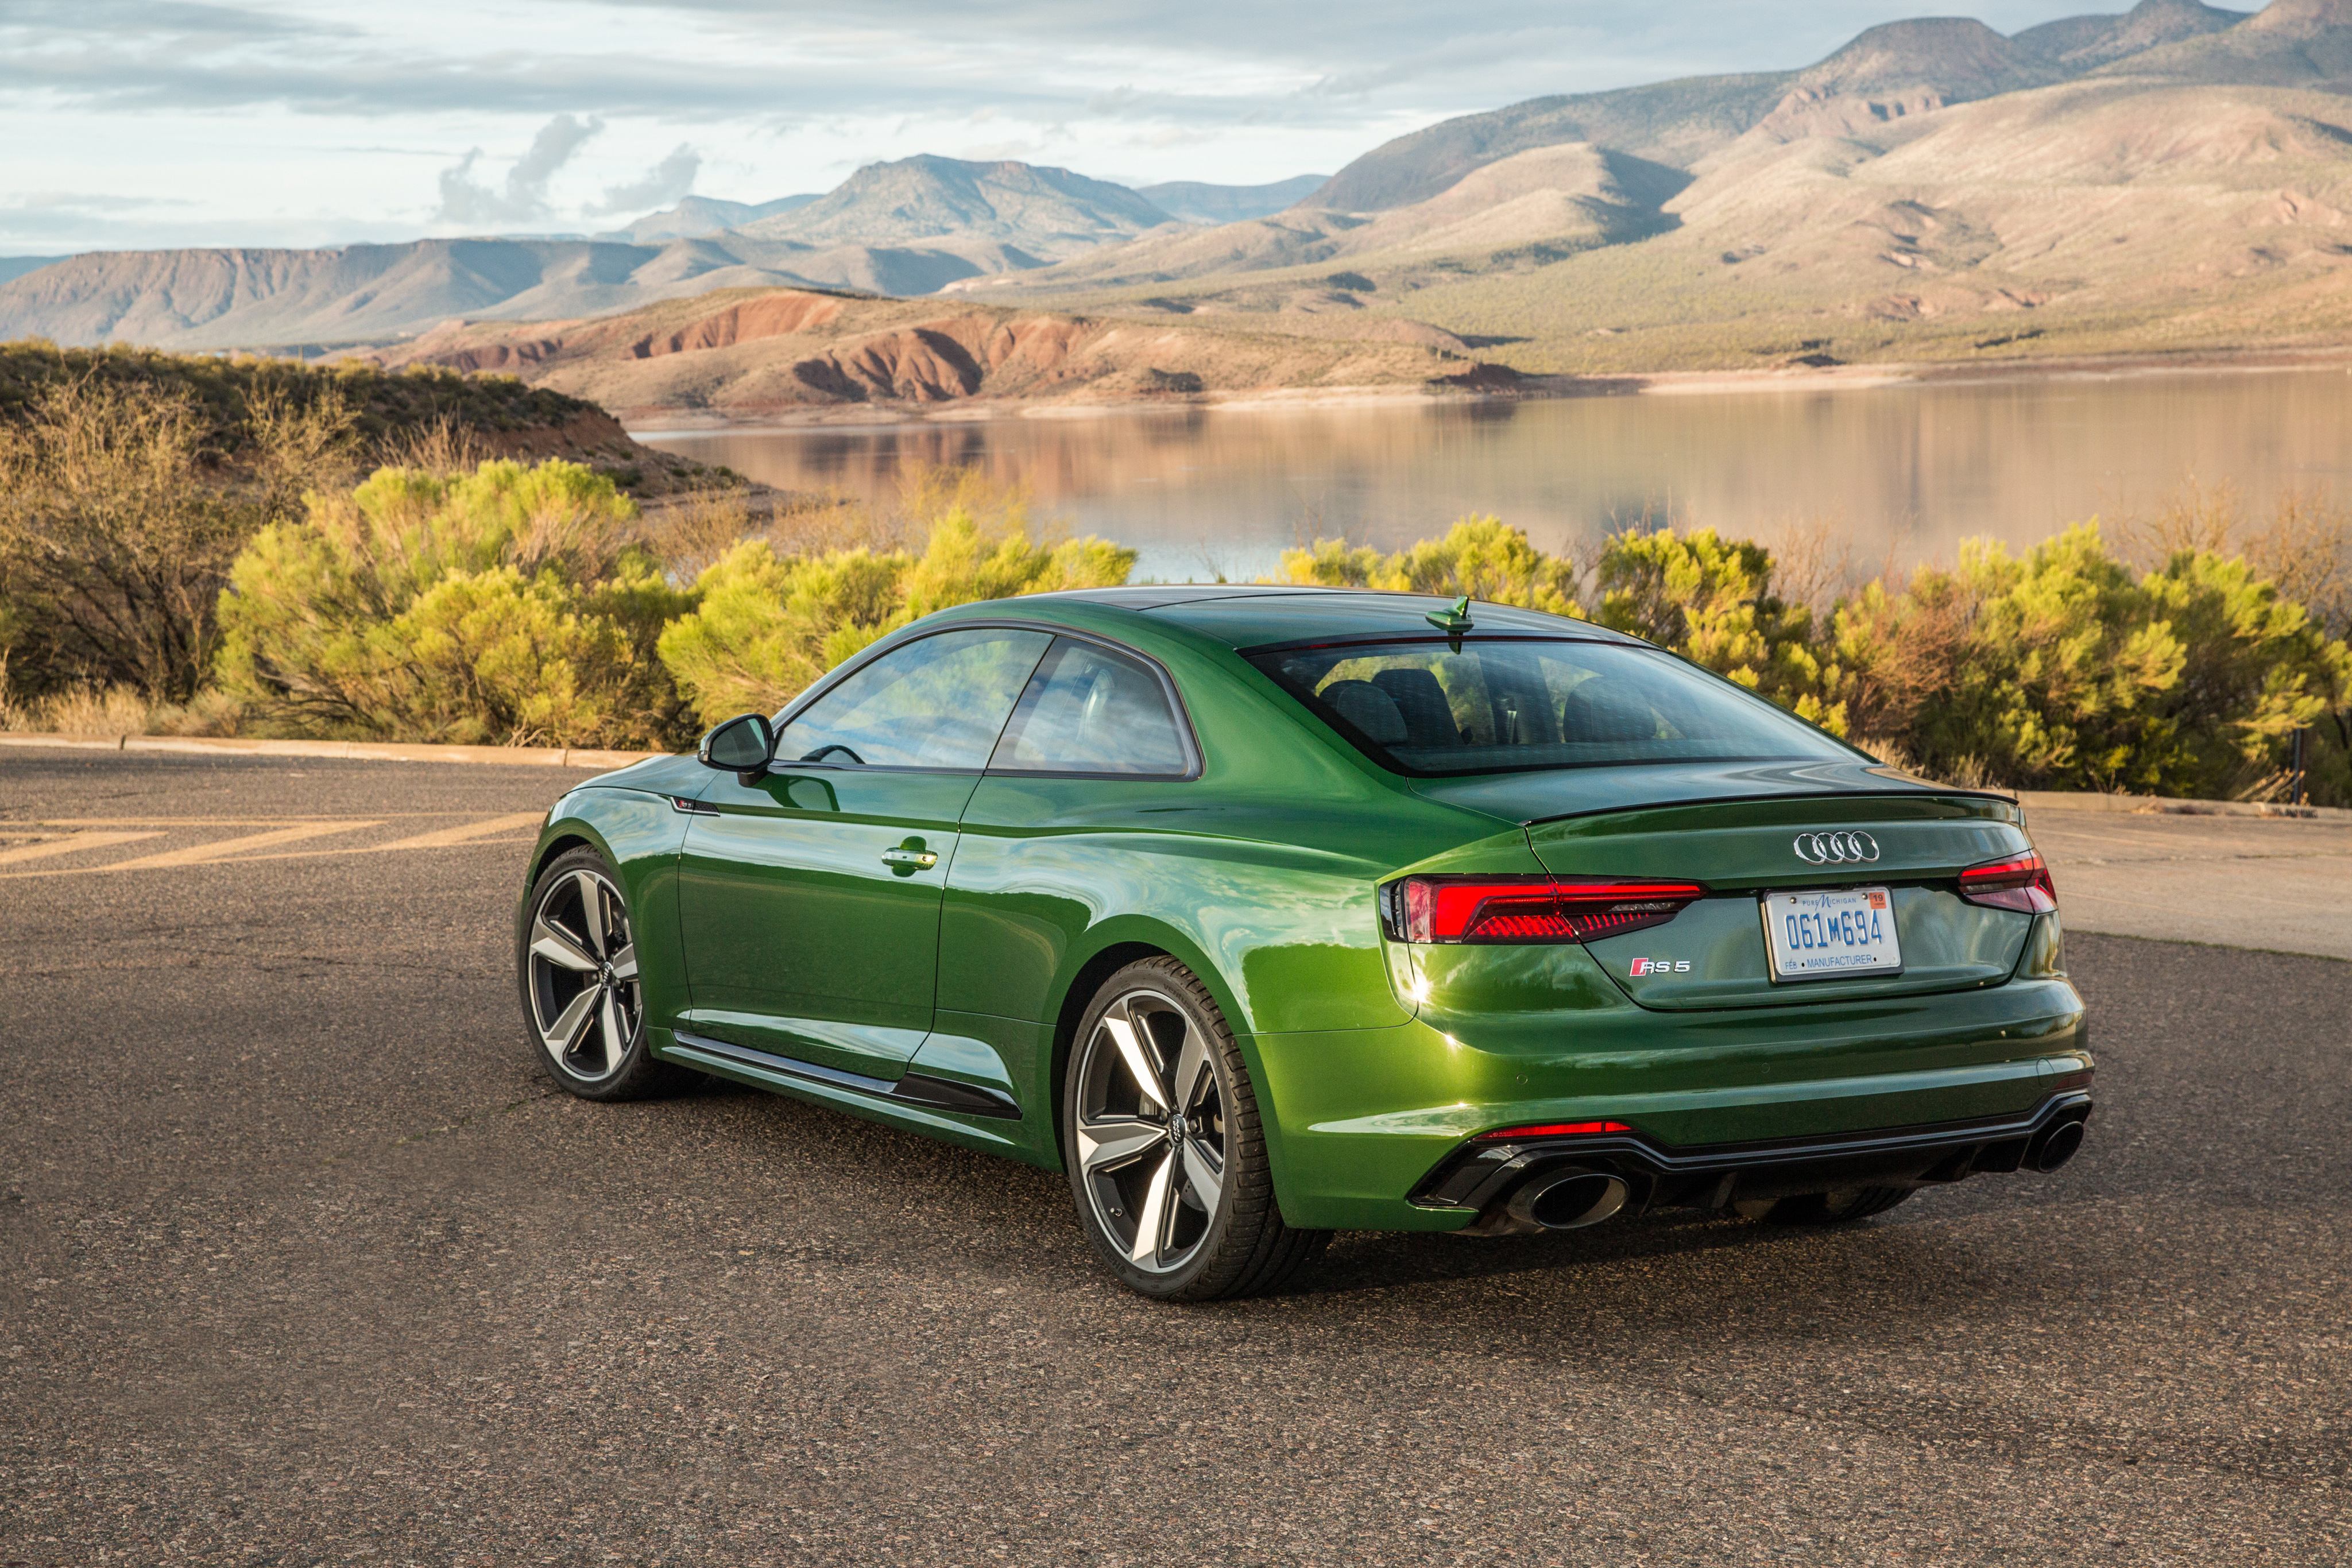 Audi Rs5 Sportback 4k 2019 Wallpapers: Audi Rs5 Coupe 4k 2018, HD Cars, 4k Wallpapers, Images